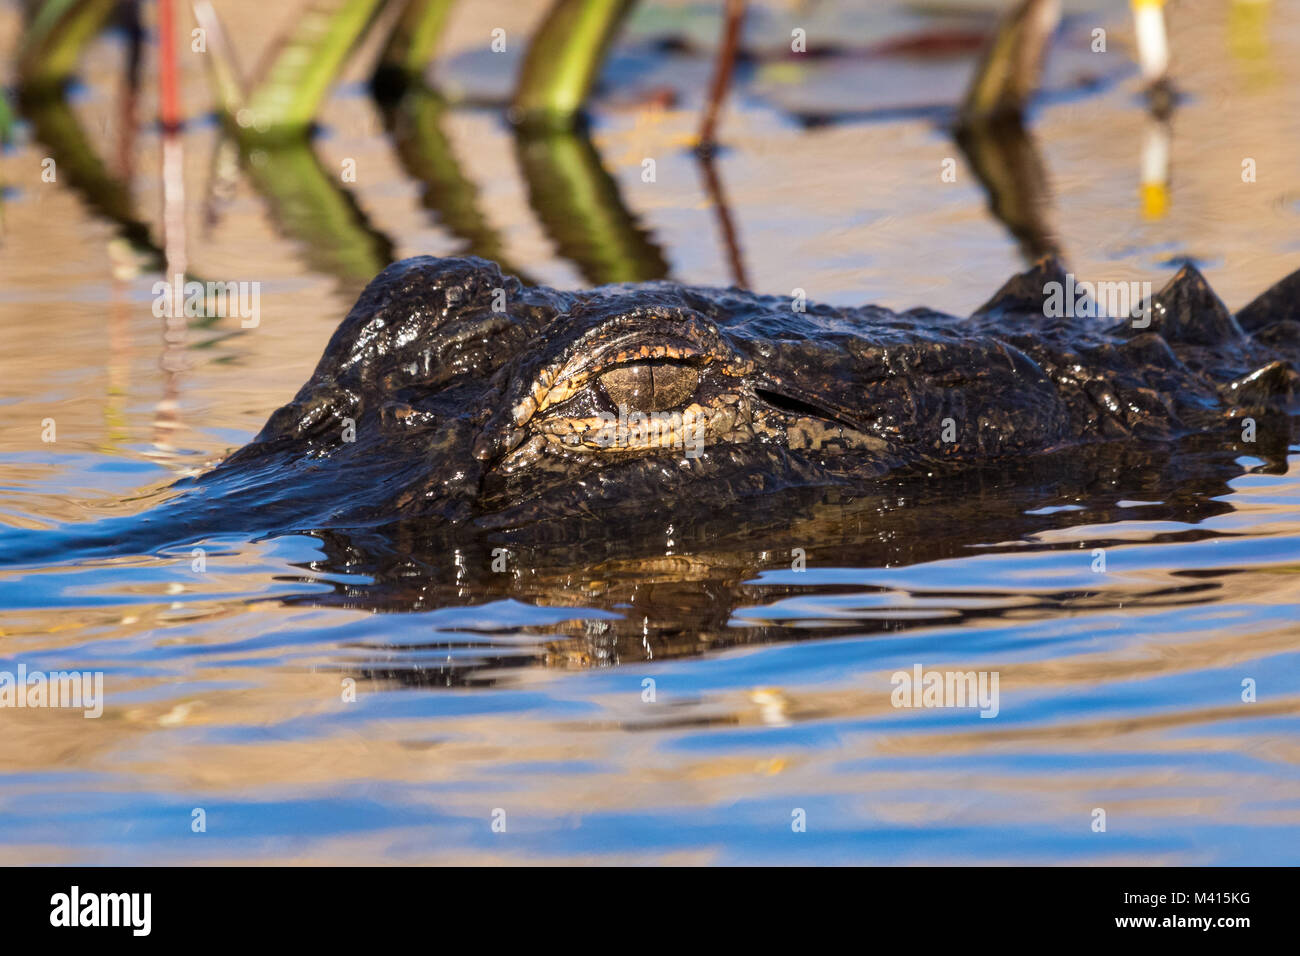 An American alligator (Alligator mississippiensis) laying low in the swamp. - Stock Image